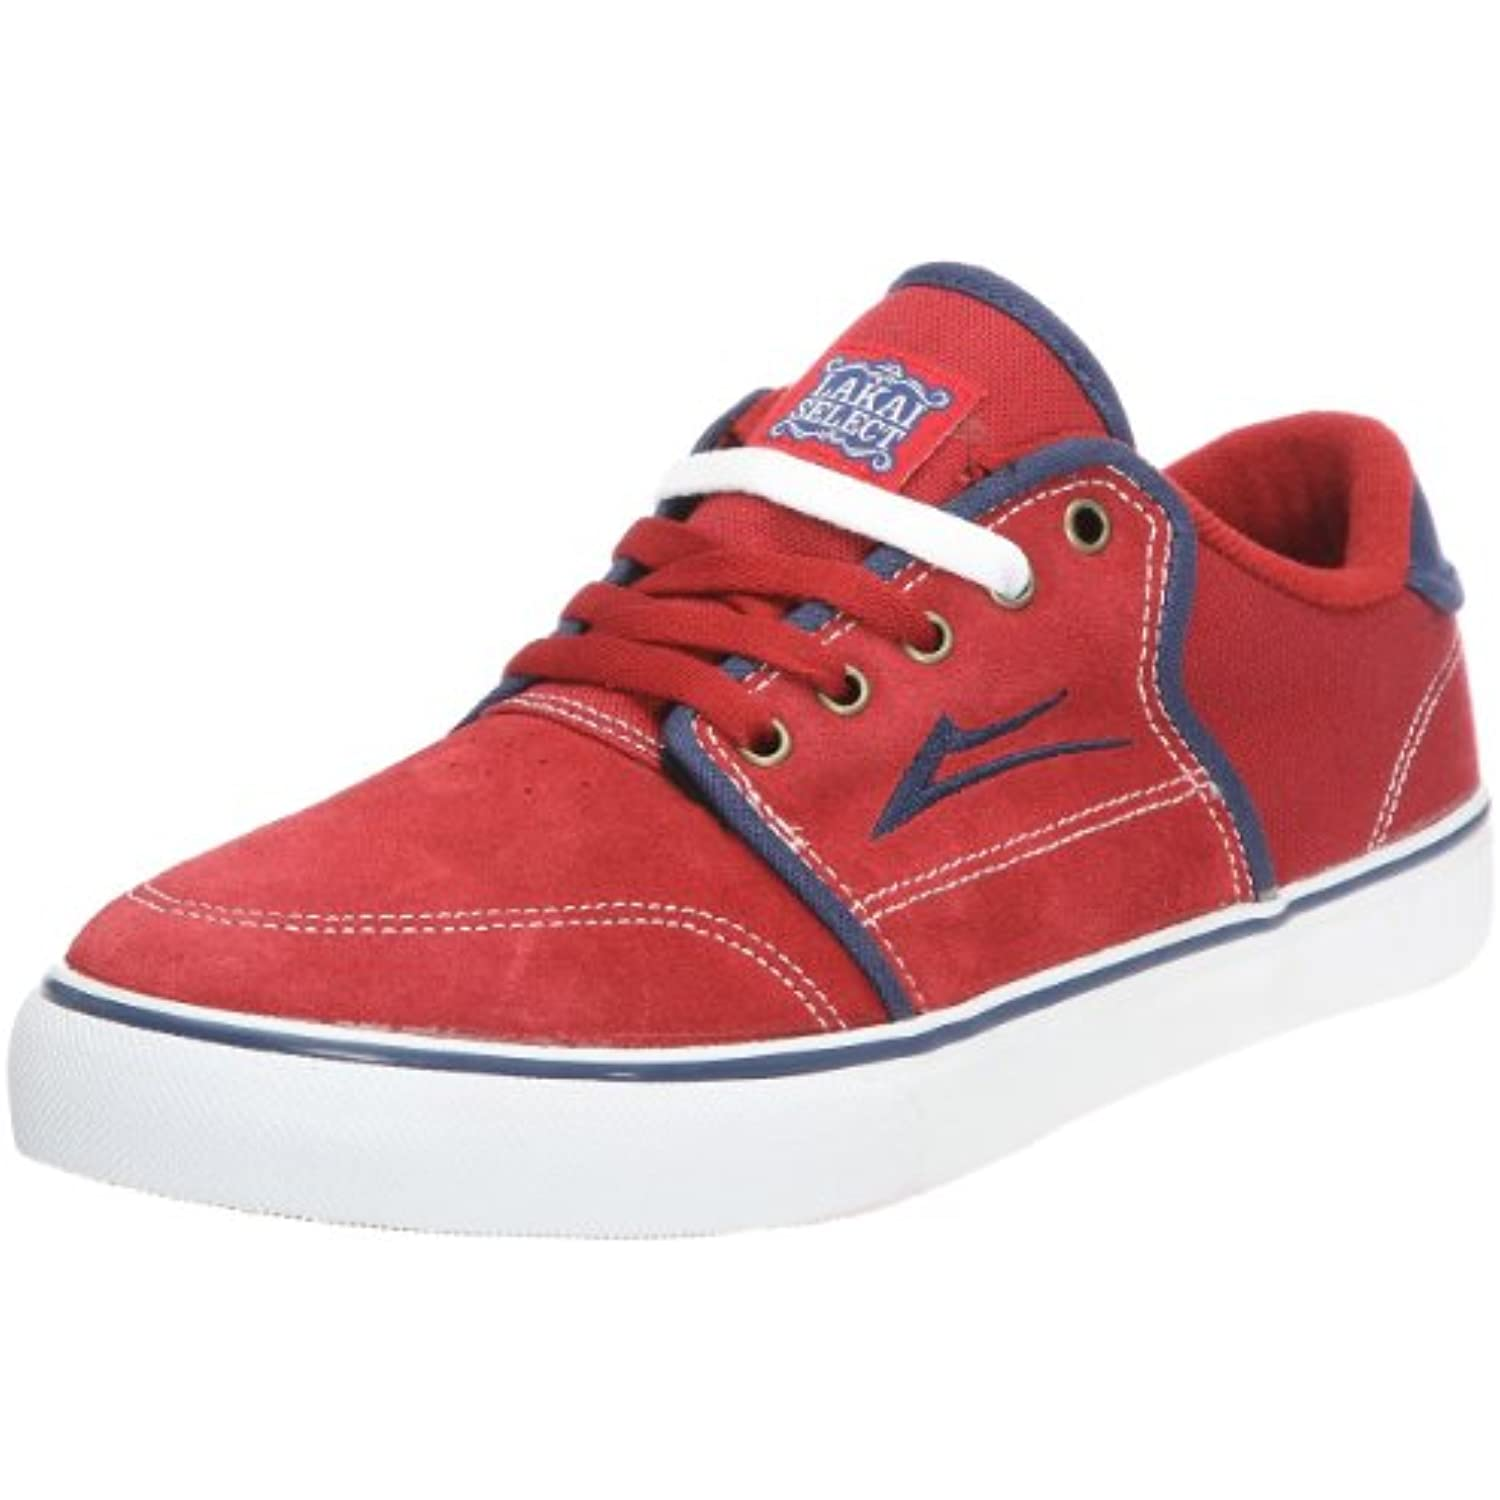 Lakai CARLO MS1120202A00, - Baskets mode homme - MS1120202A00, B005FXRPT6 - 9b3a09